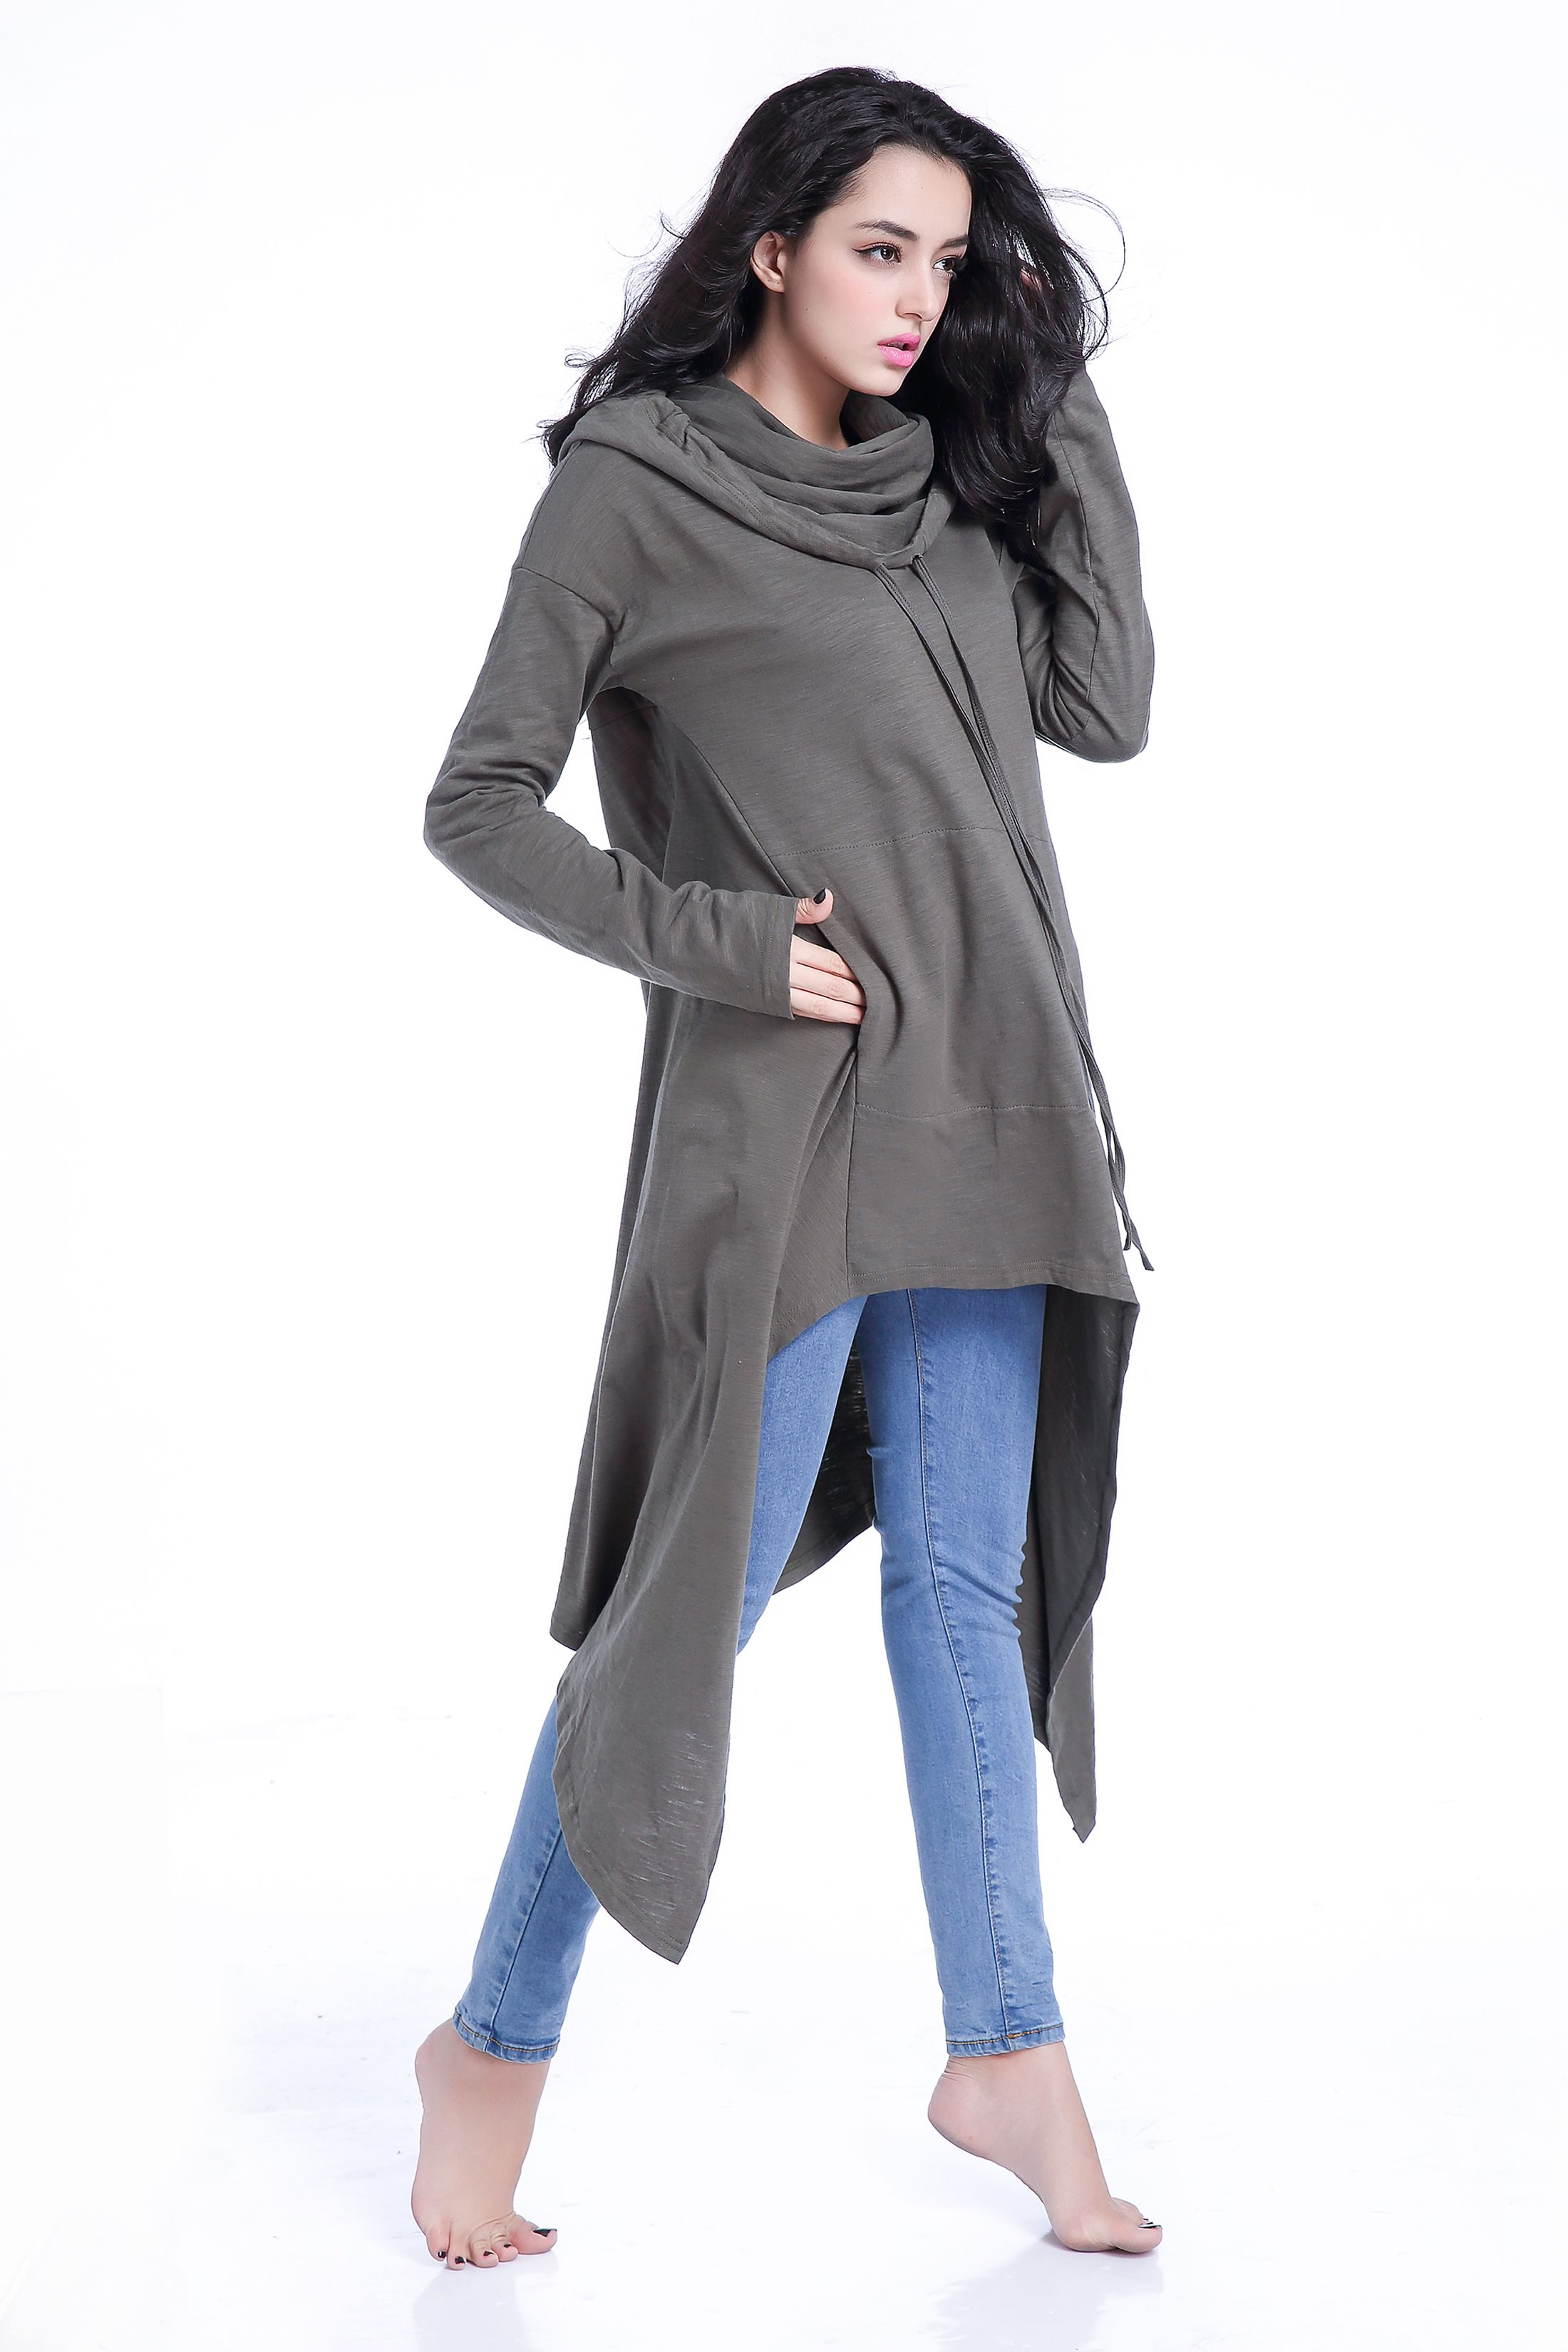 e21ae060450 Women s 100% Cotton Asymmetrical Loose Fit Oversized Pullover Hoodie Tunic  Dress  hoodie  hooded  shopping  womensclothing